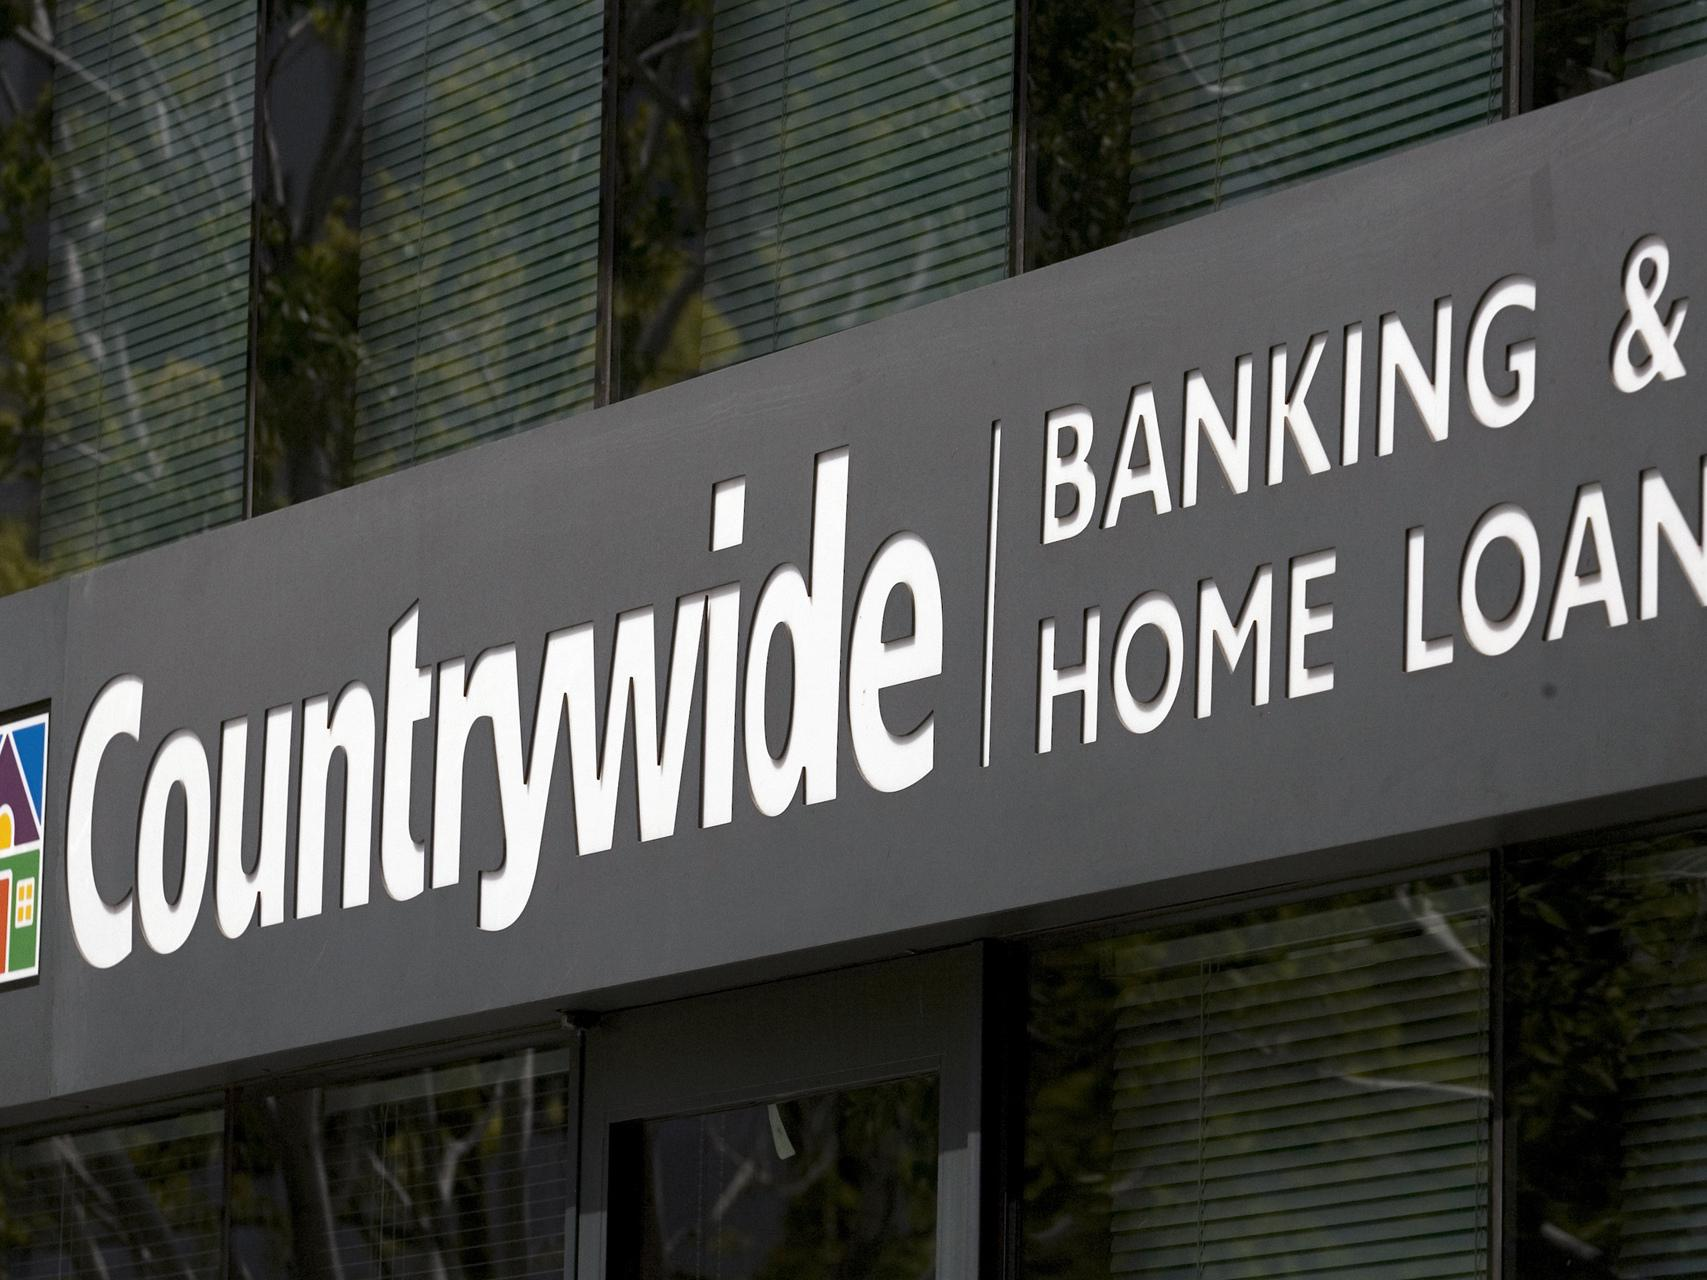 countrywide's unethical business dealings This research paper countrywide financial: the subprime meltdown case study and  during countrywide's peak  sound like a proper way of doing business,.